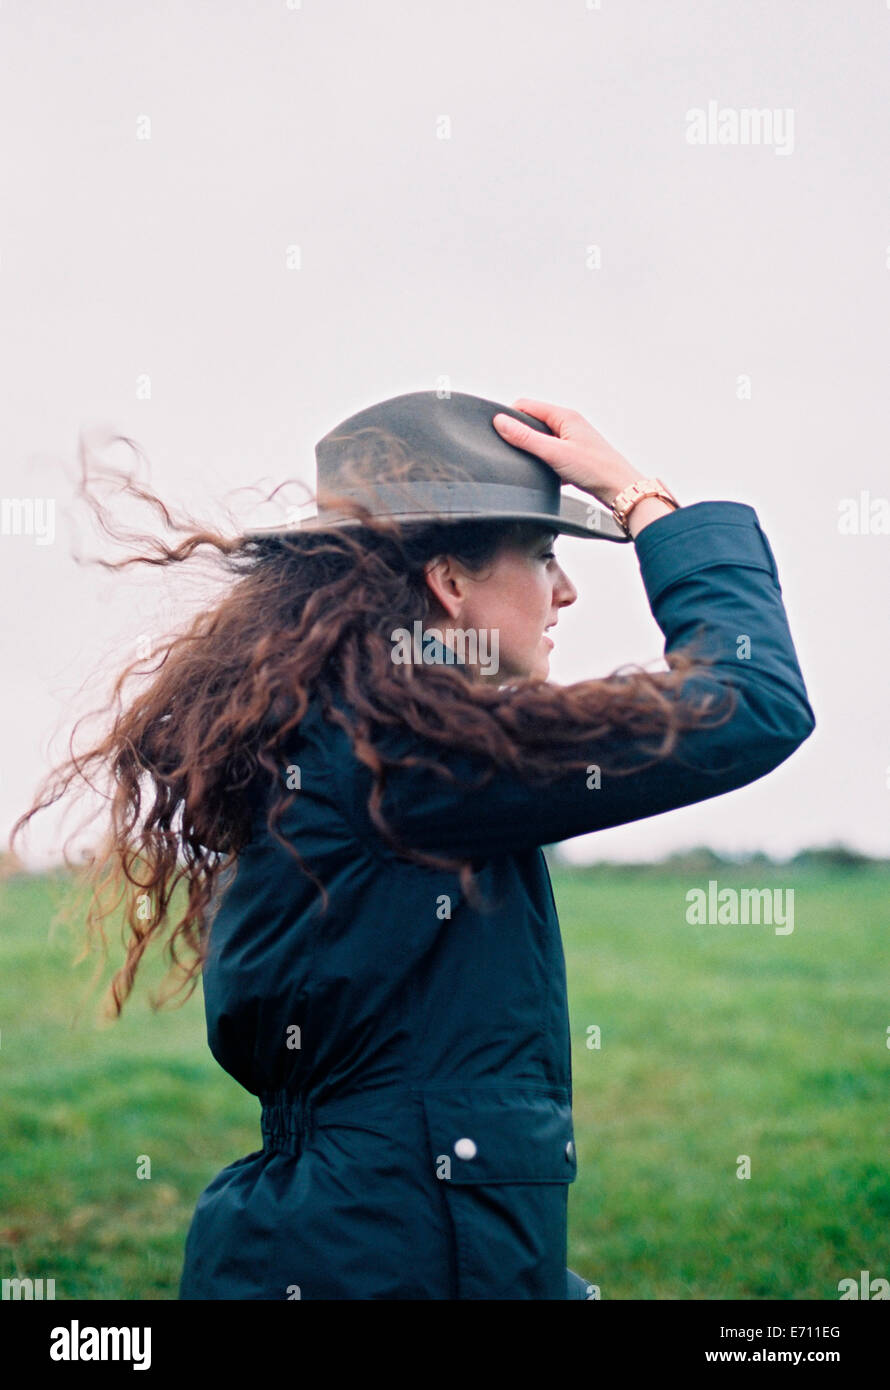 A woman with long hair being blown in the breeze, holding her hat. - Stock Image